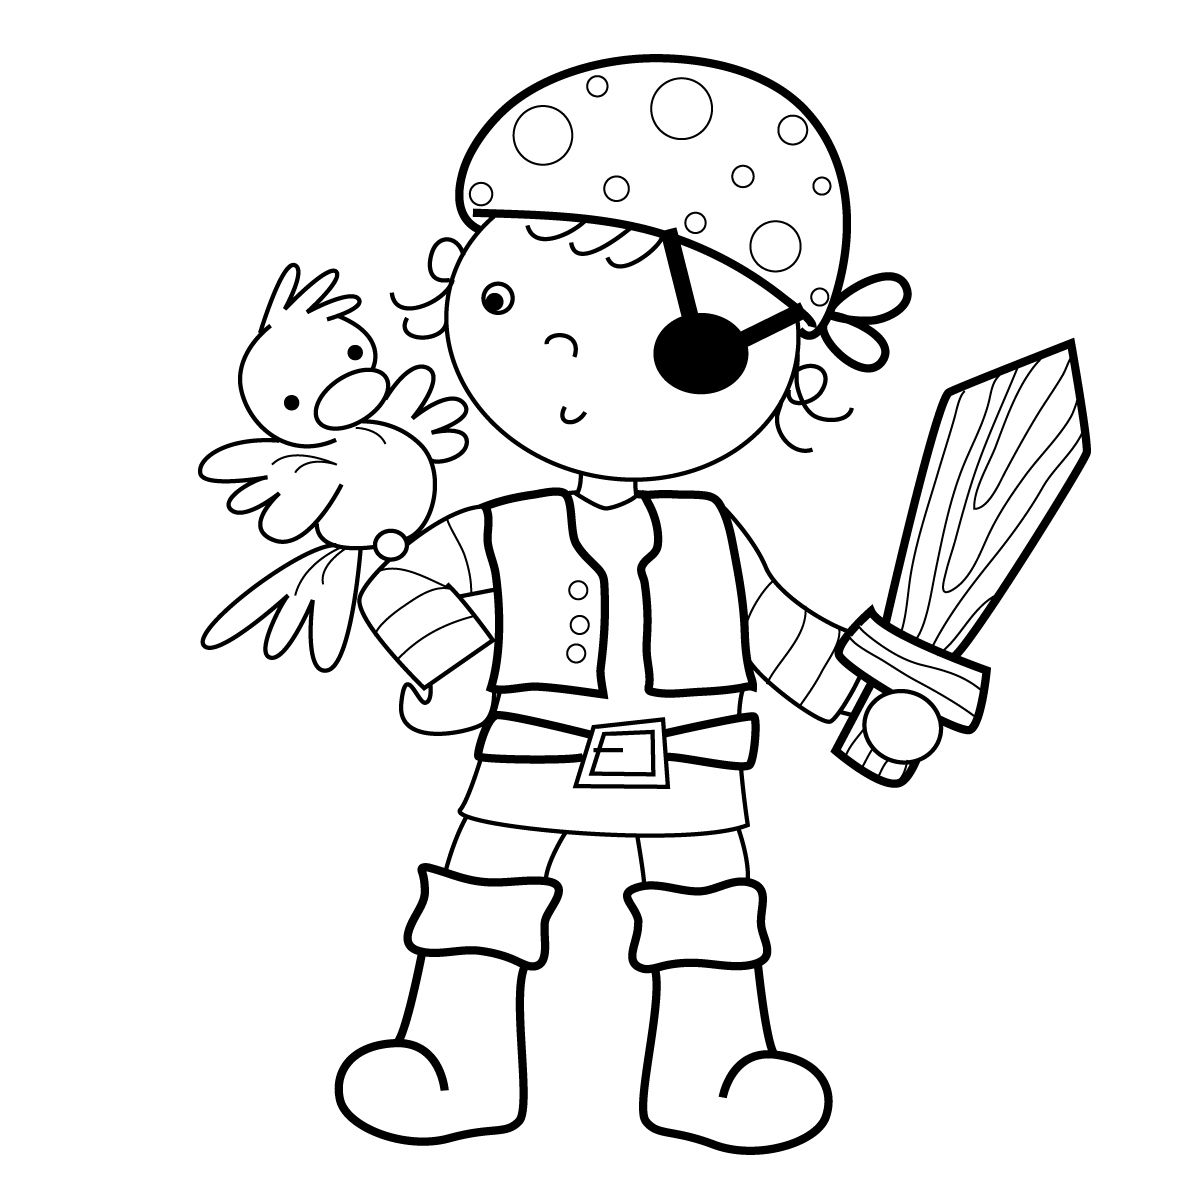 Pirate Coloring Pages Pirate Crafts Pirate Quilt